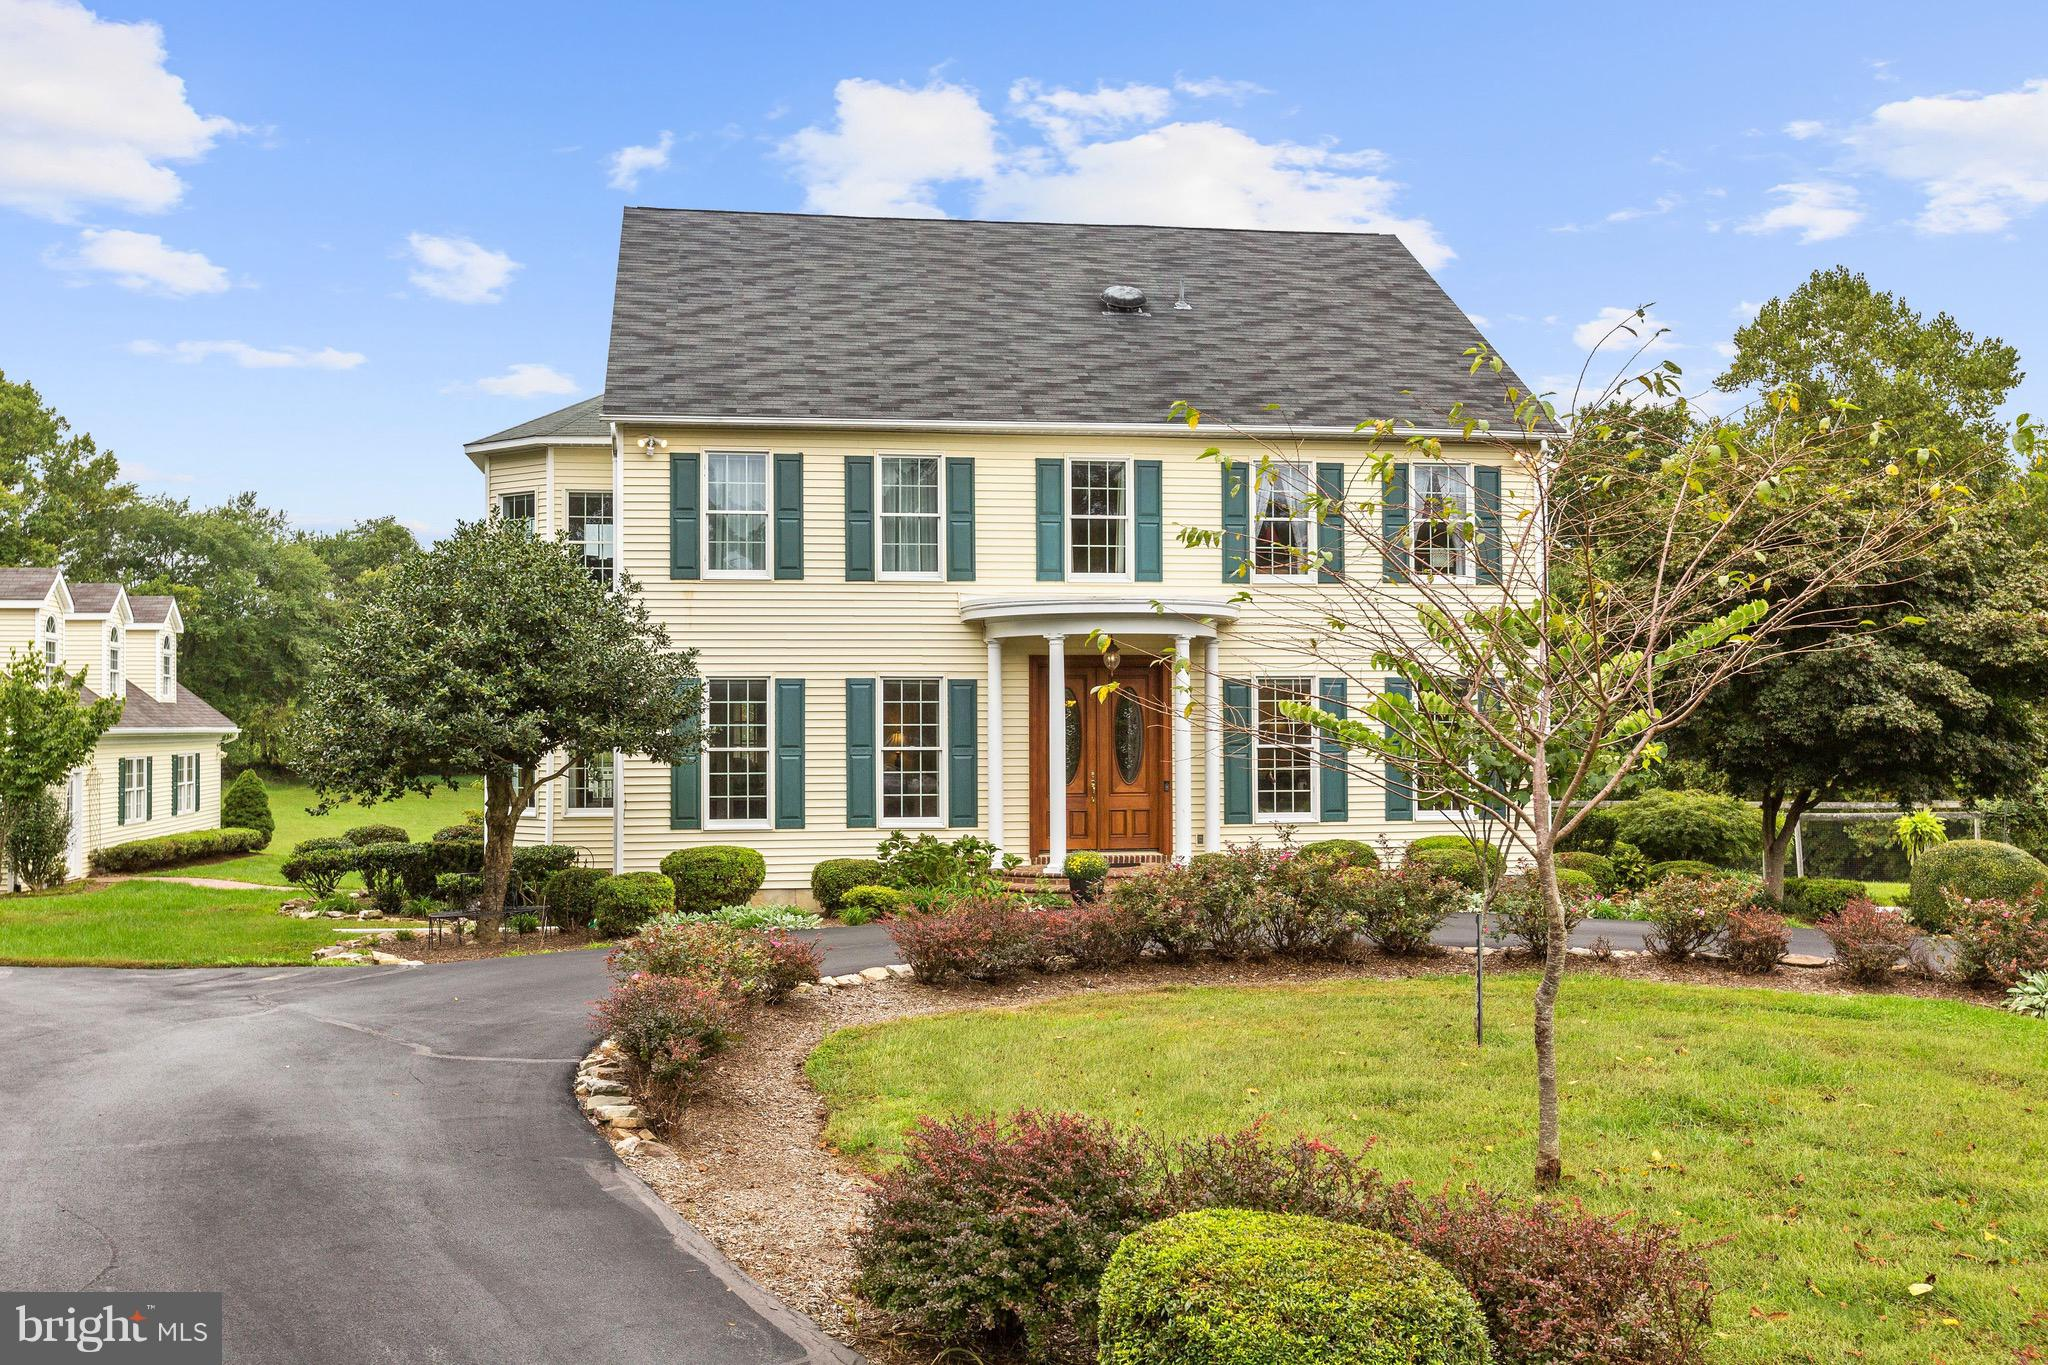 14706 SPRING MEADOWS DRIVE, DARNESTOWN, MD 20874